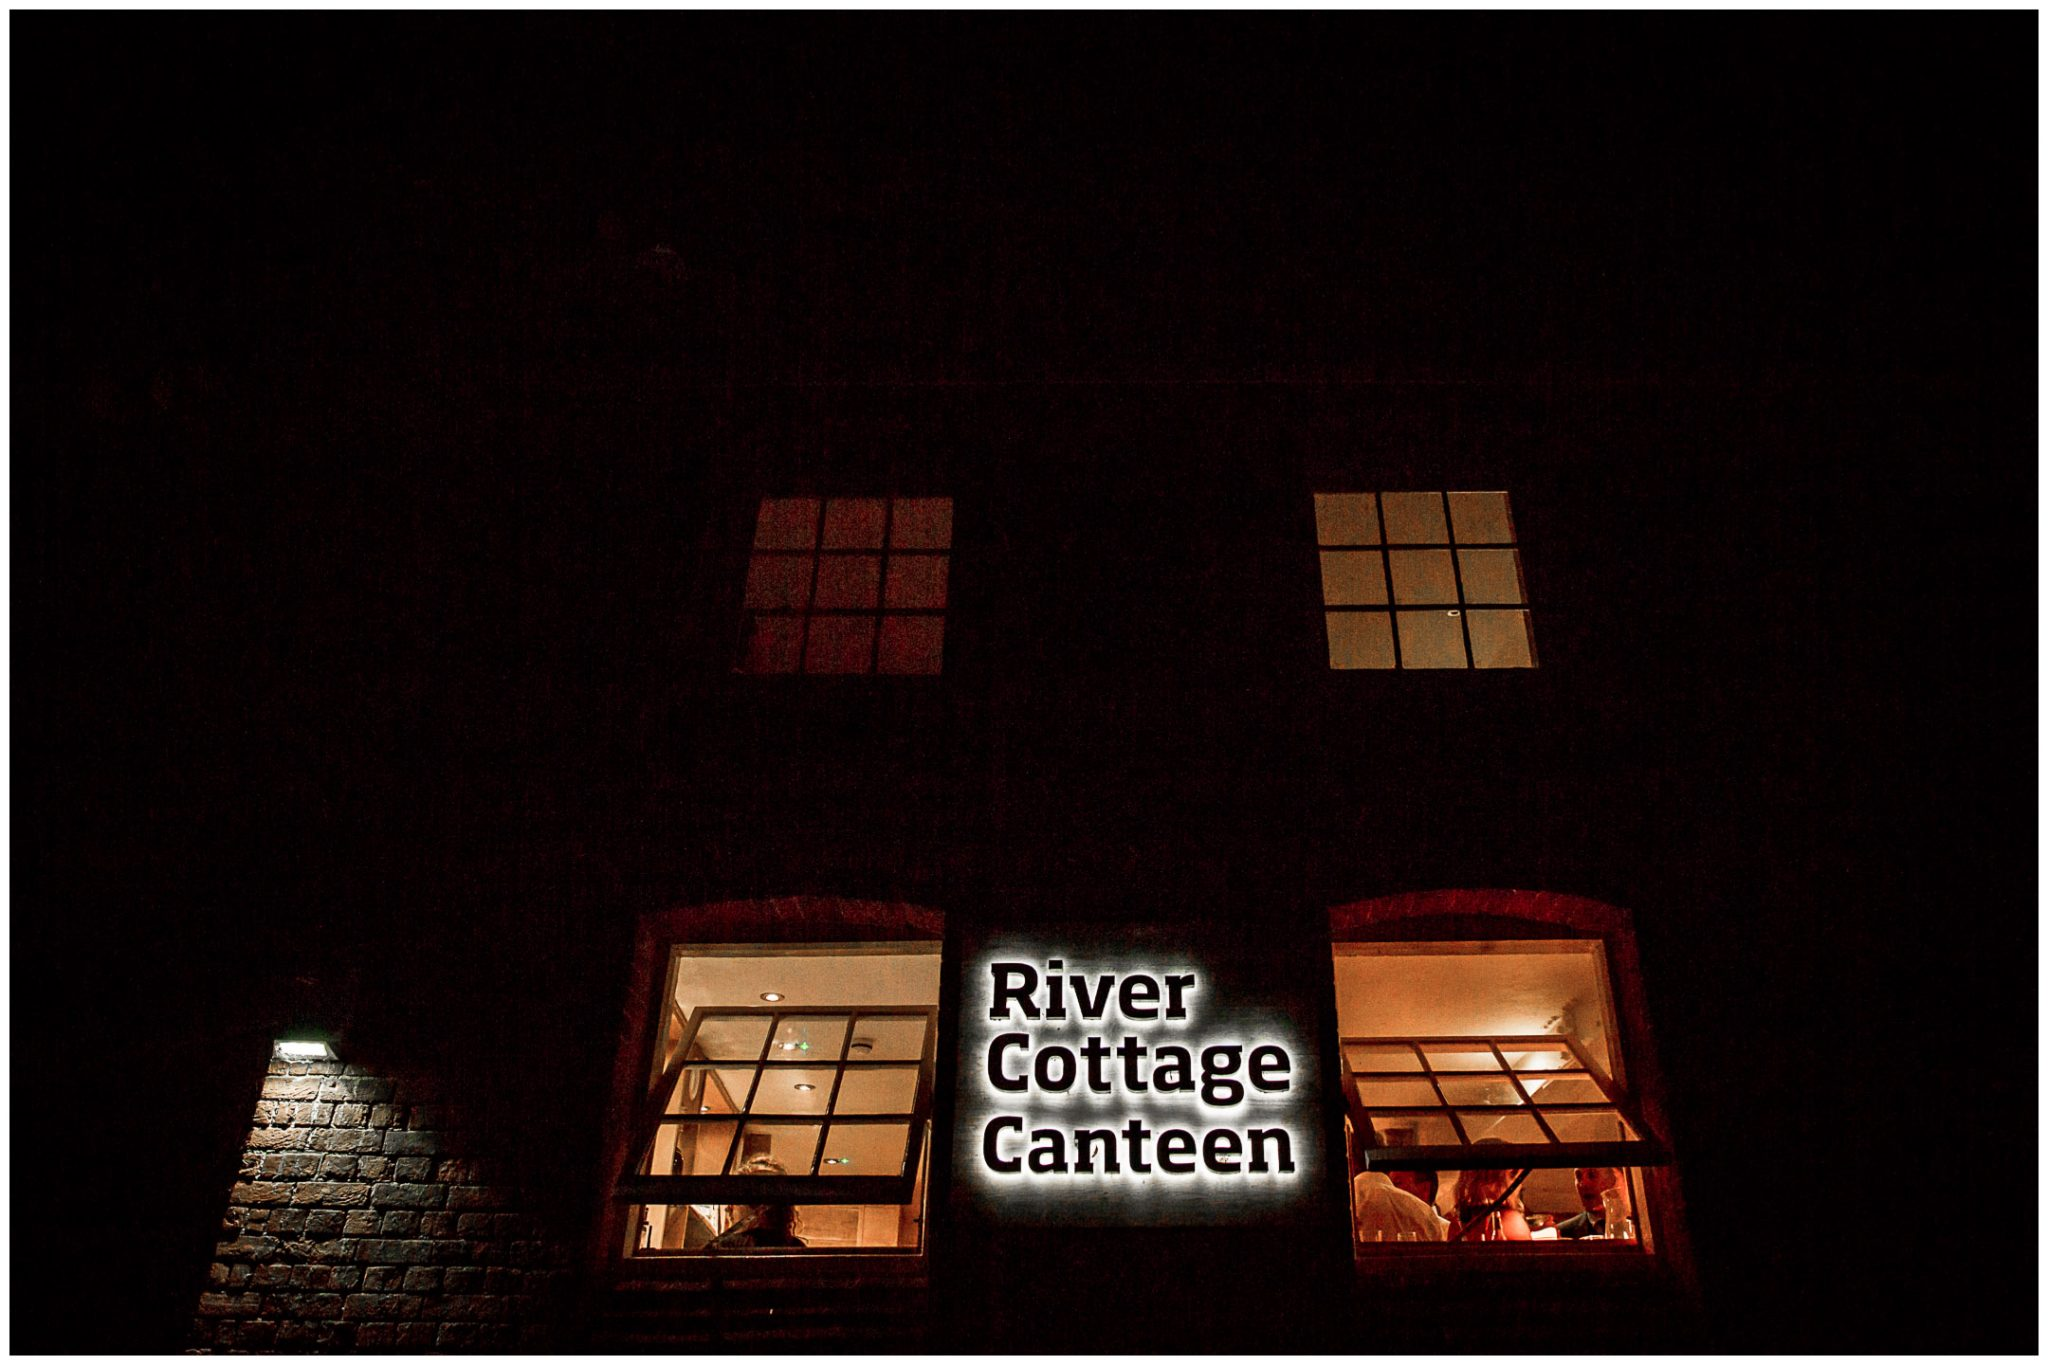 River Cottage Winchester lit up at night